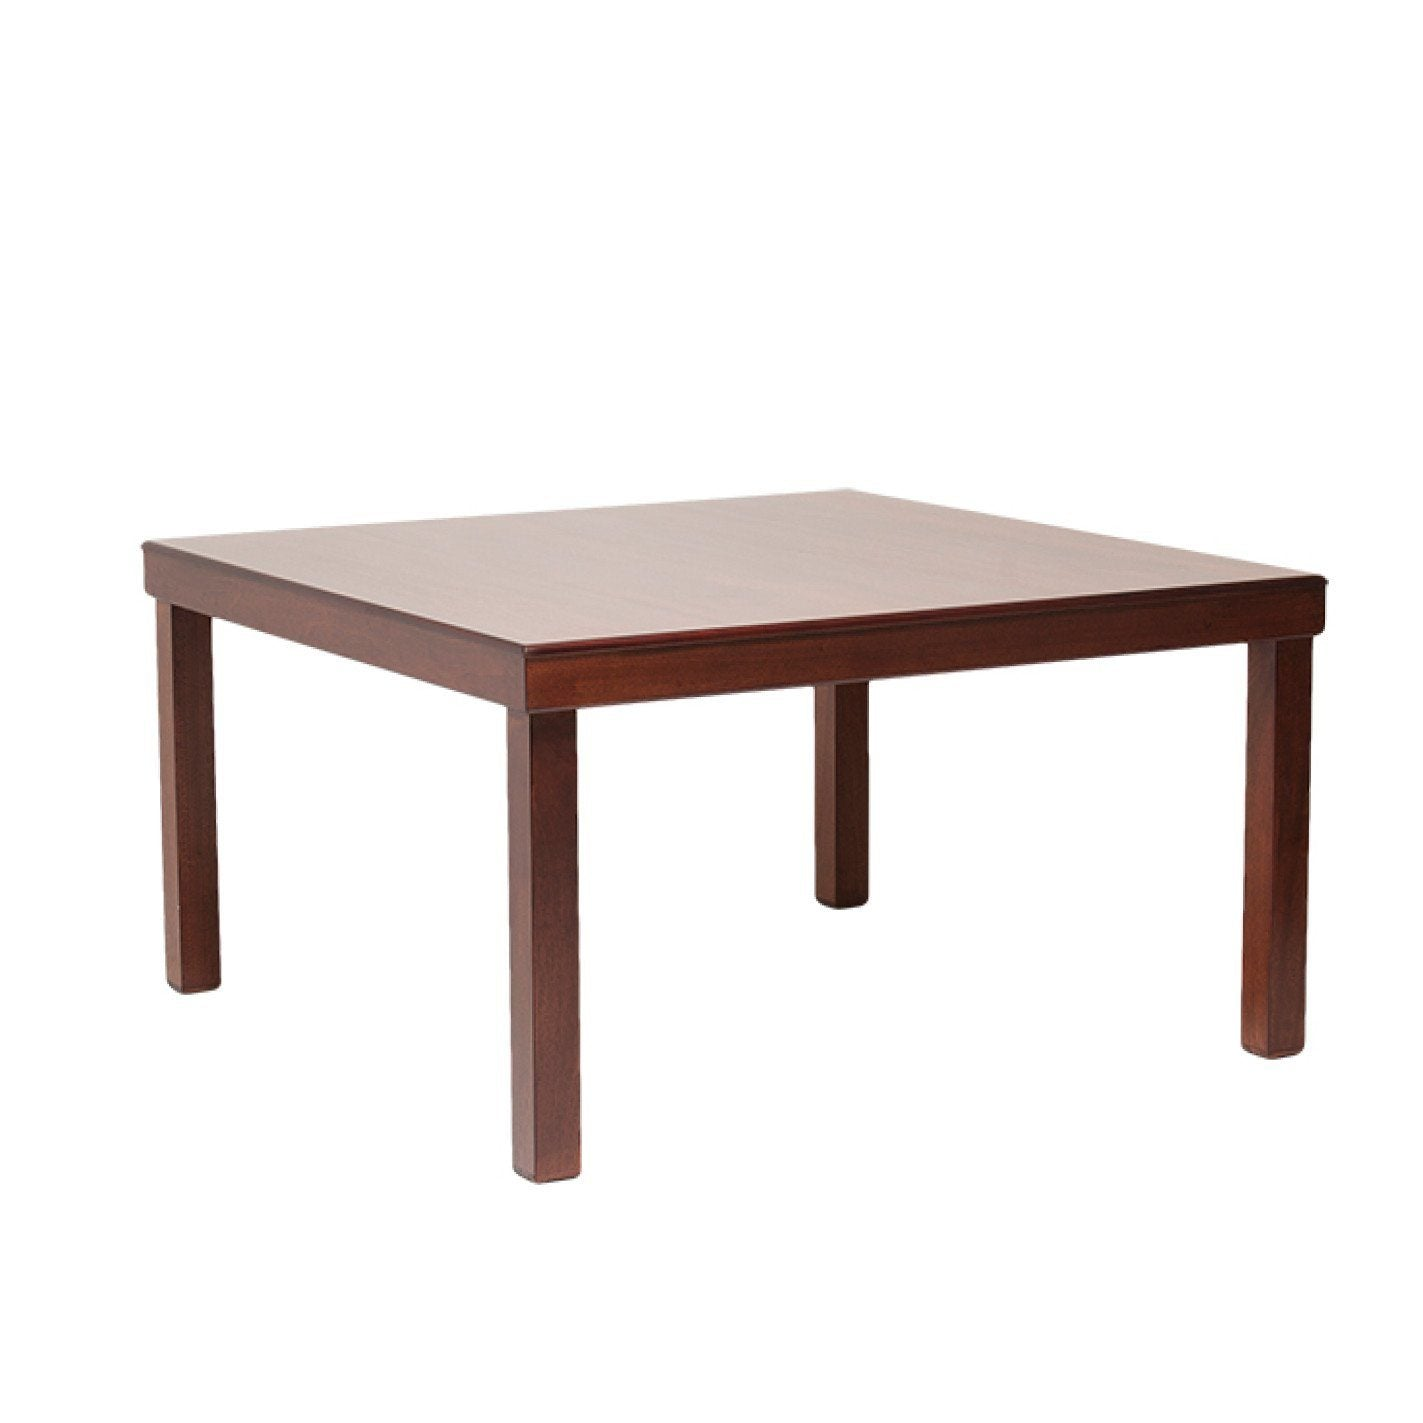 URBAN-DINING TABLE-900/900-WALNUT